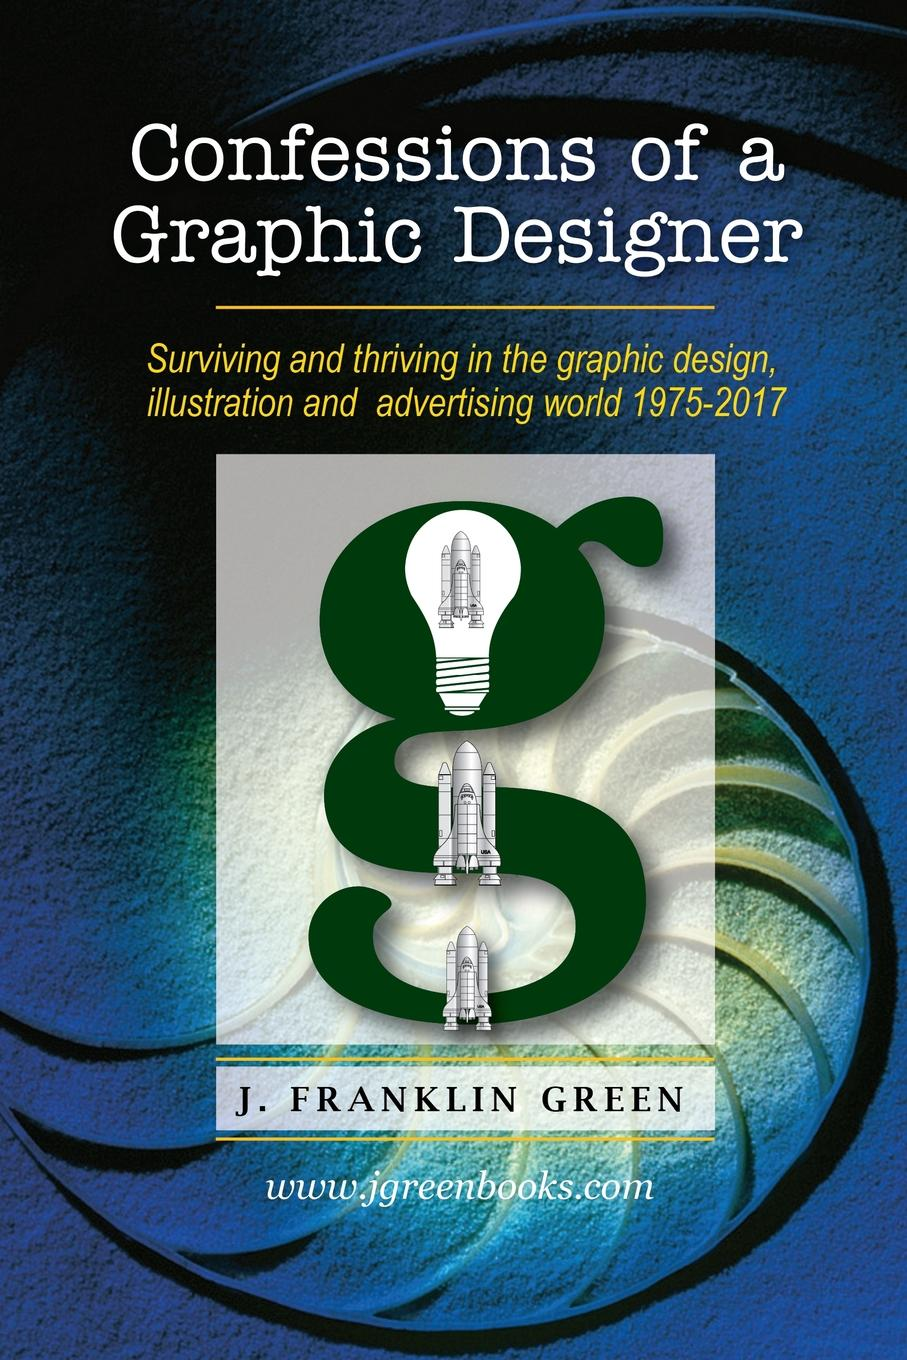 John Green Confessions of a Graphic Designer steven heller becoming a graphic and digital designer a guide to careers in design